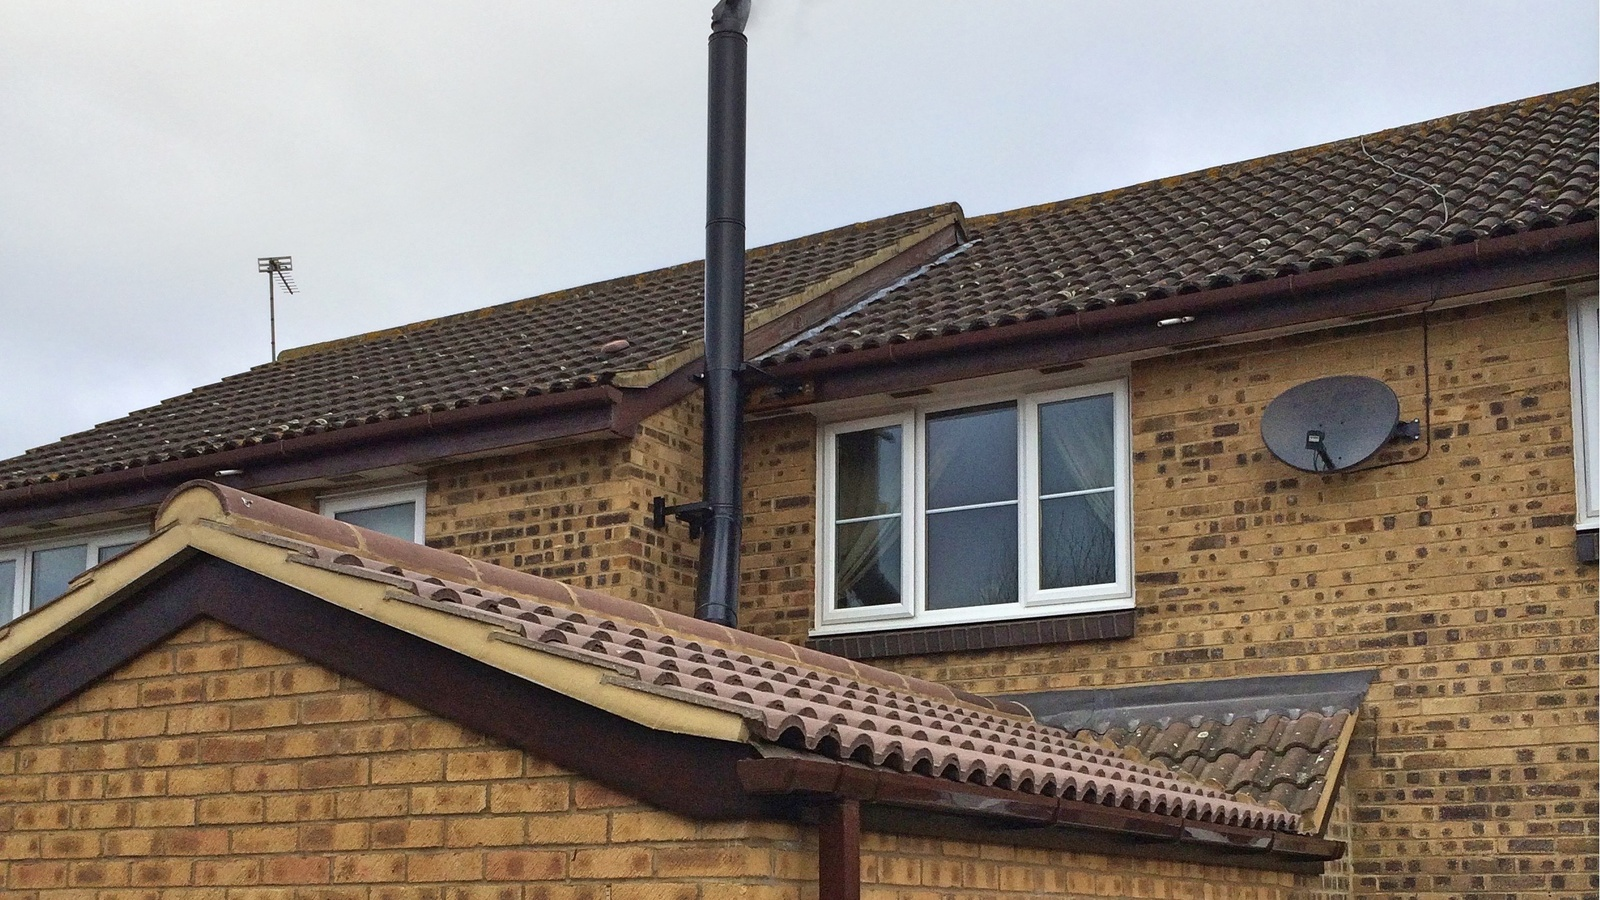 A very neat installation of a twin wall flue to a single storey extension. The neighbours permission was sought for supporting the flue.